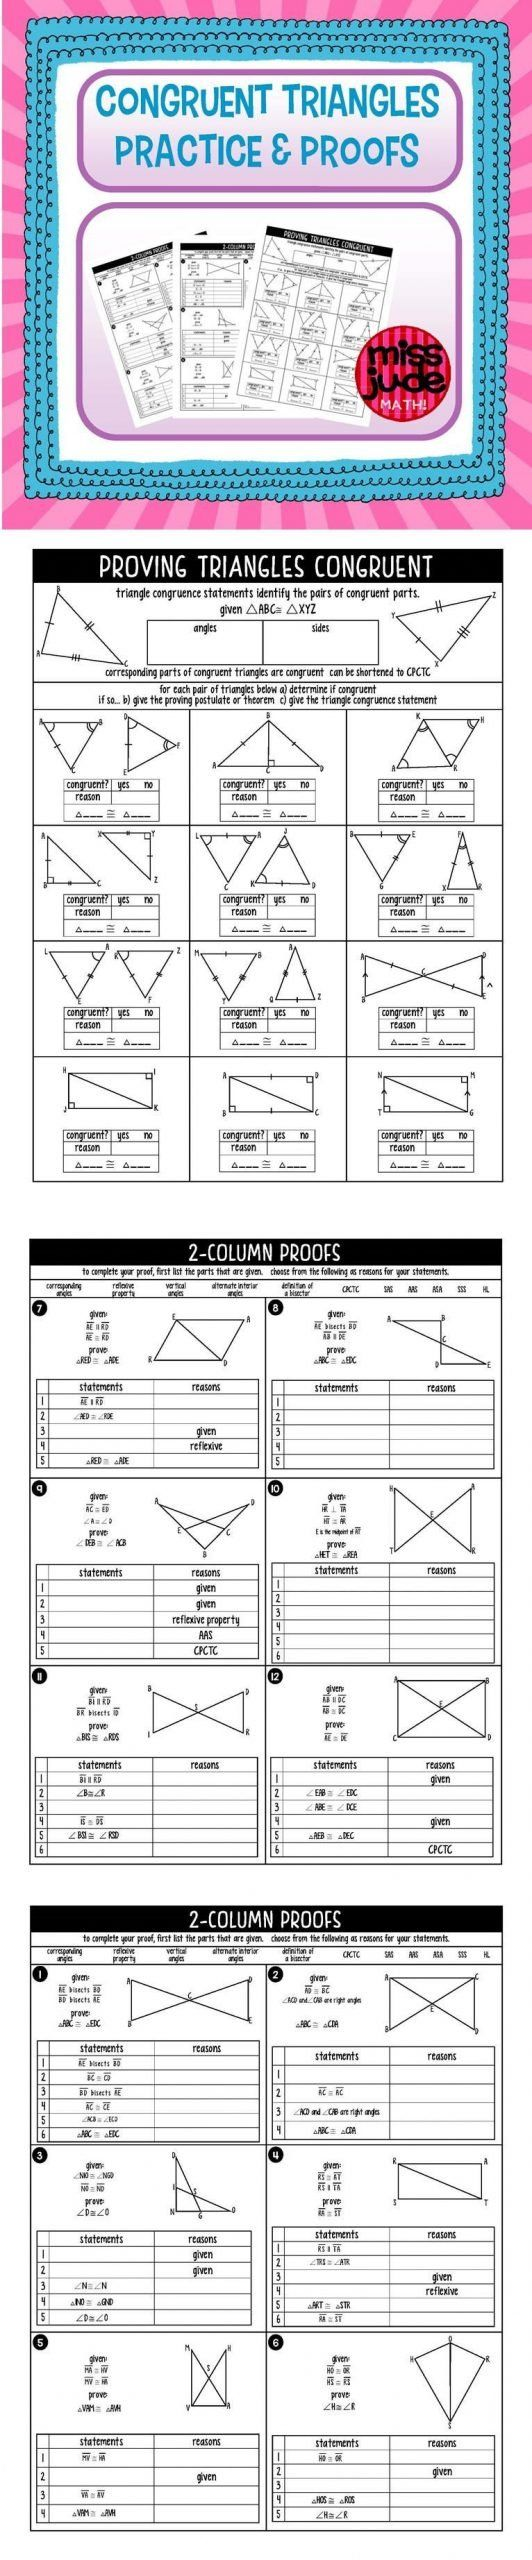 Proving Triangles Congruent Worksheet Answers Congruent